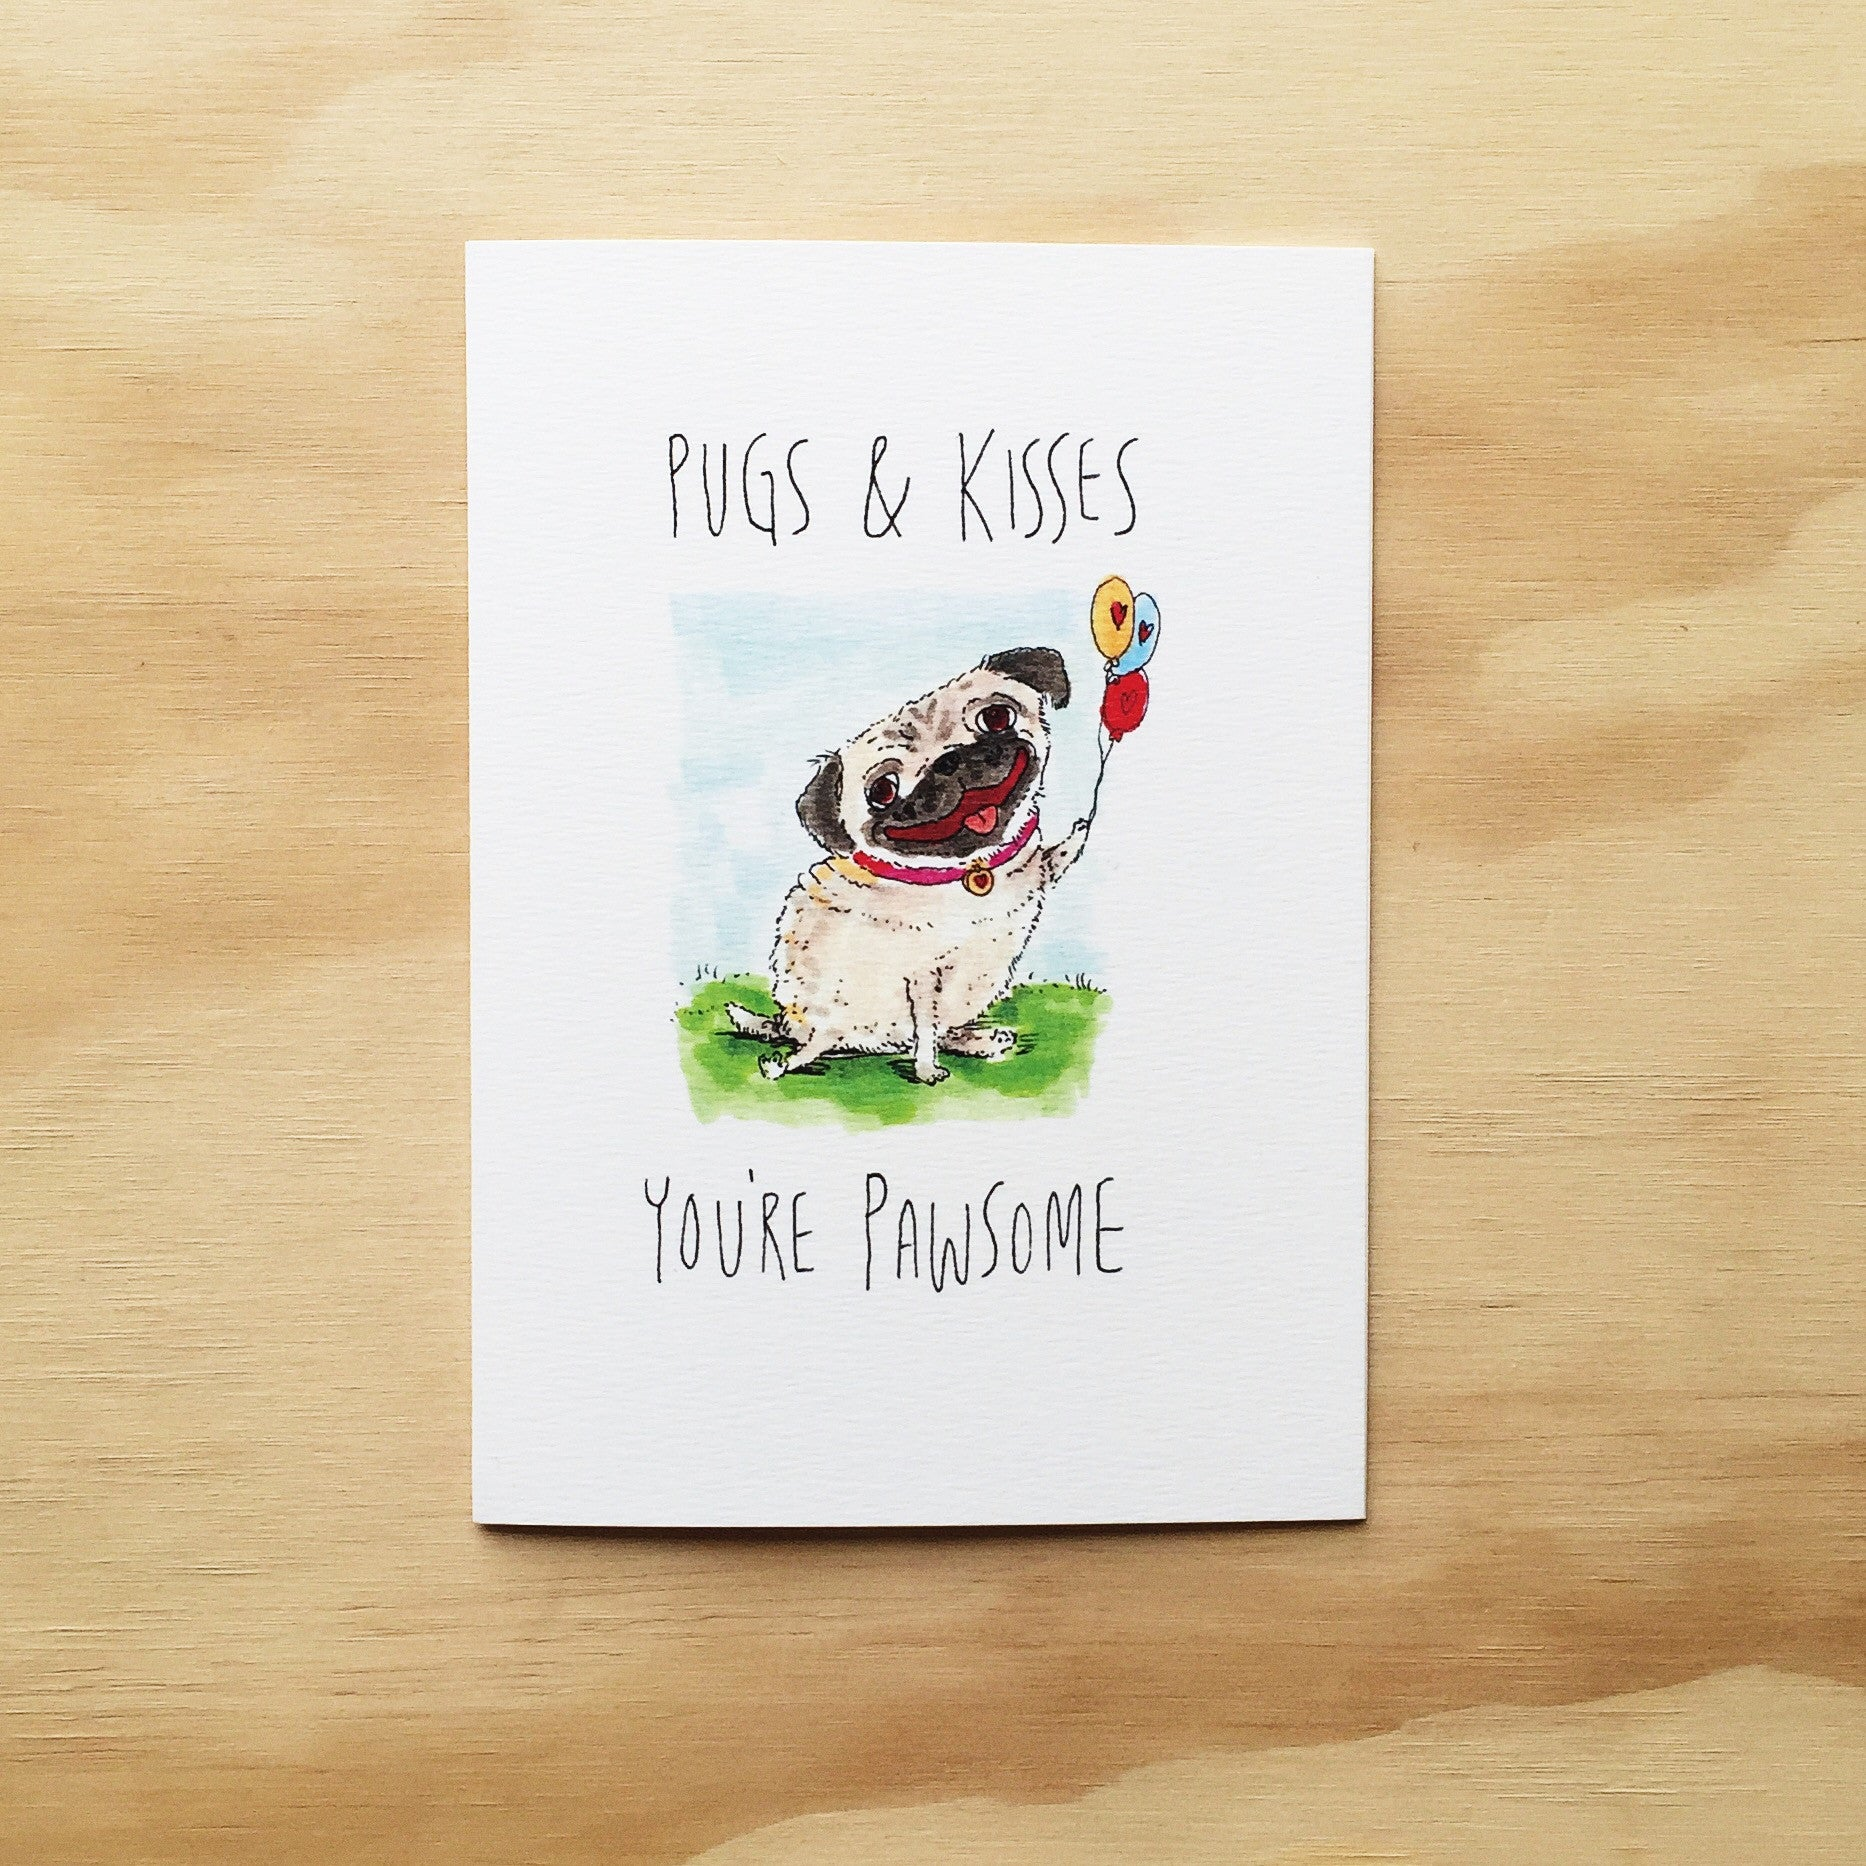 Pugs and Kisses, You're Pawsome - Well Drawn